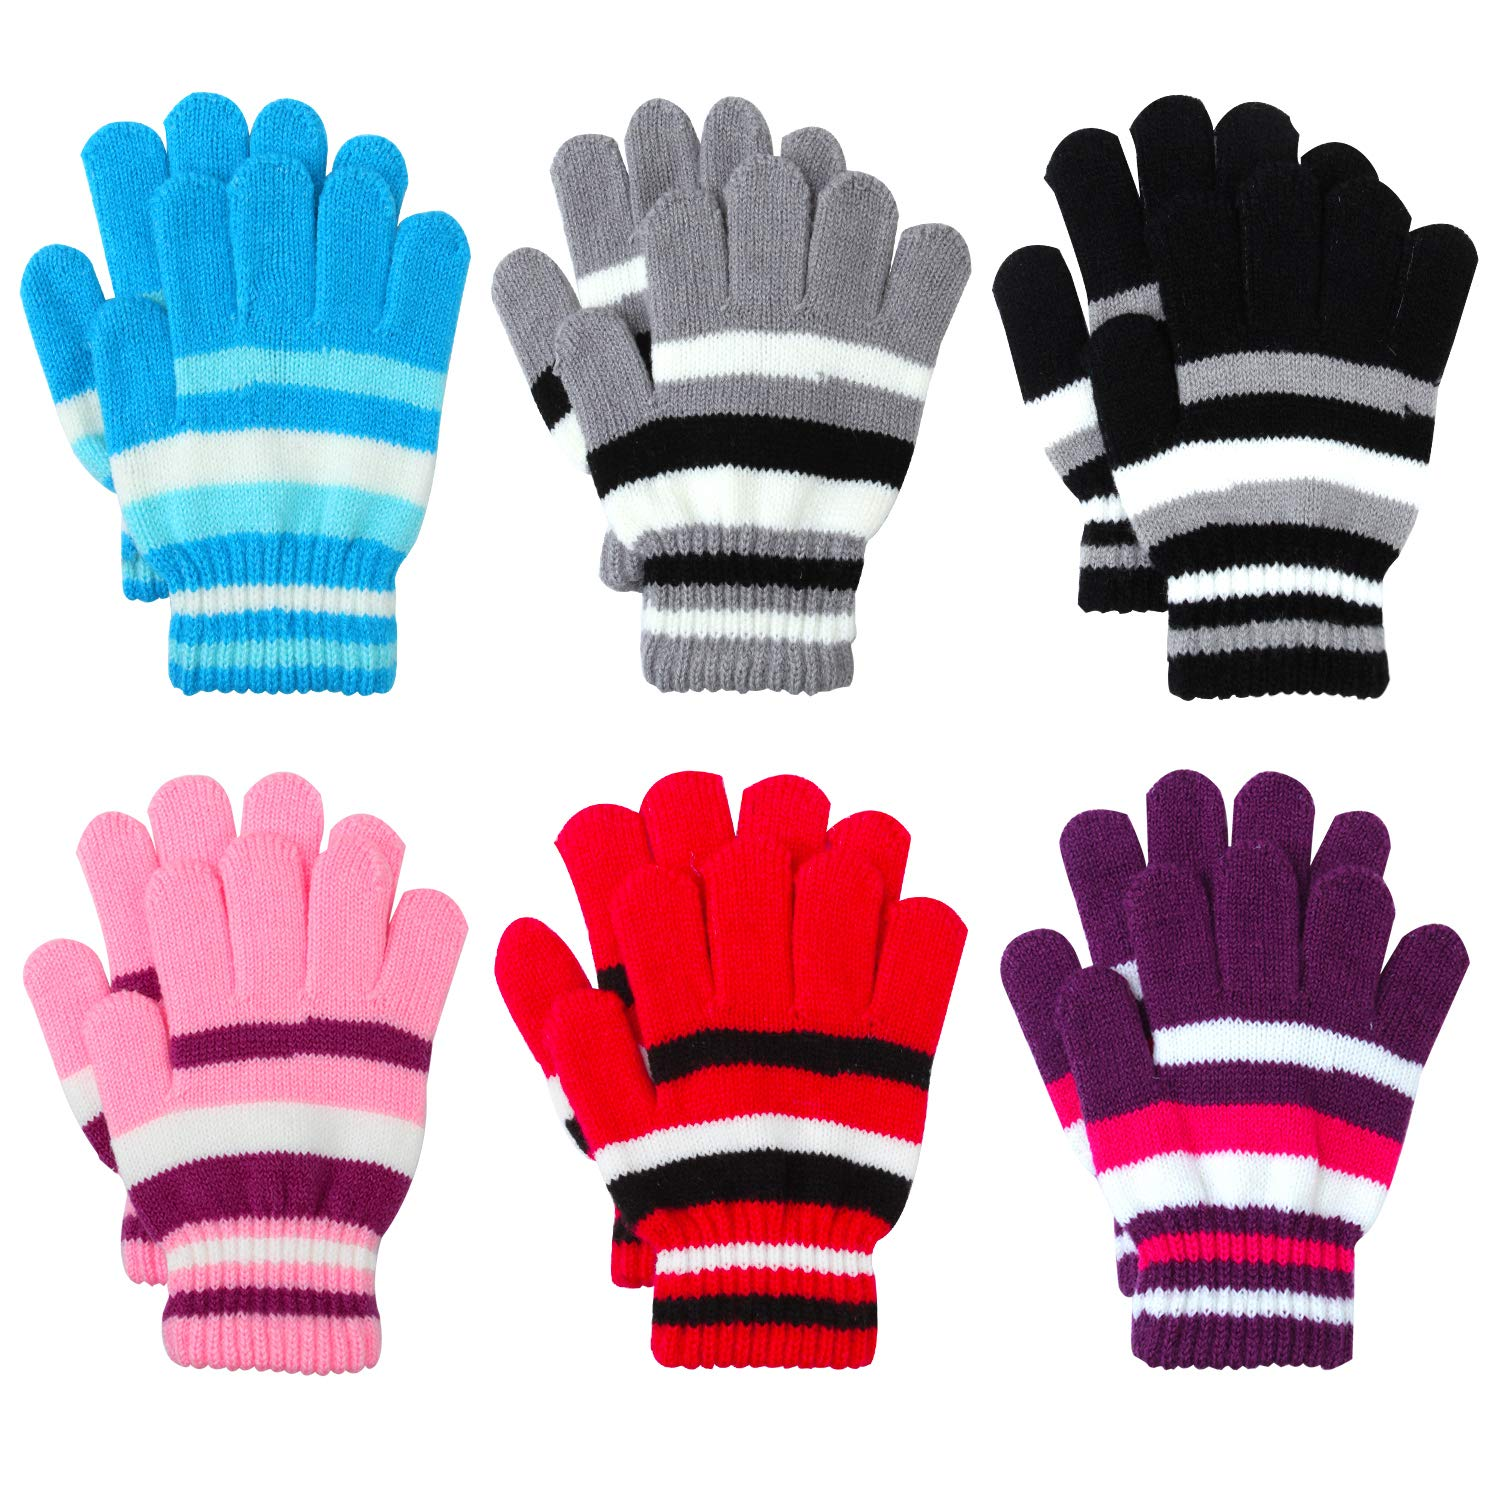 Coobey 6 Pairs Children Warm Stretch Gloves Winter Knitted Stripe Magic Gloves for Boys or Girls Black)